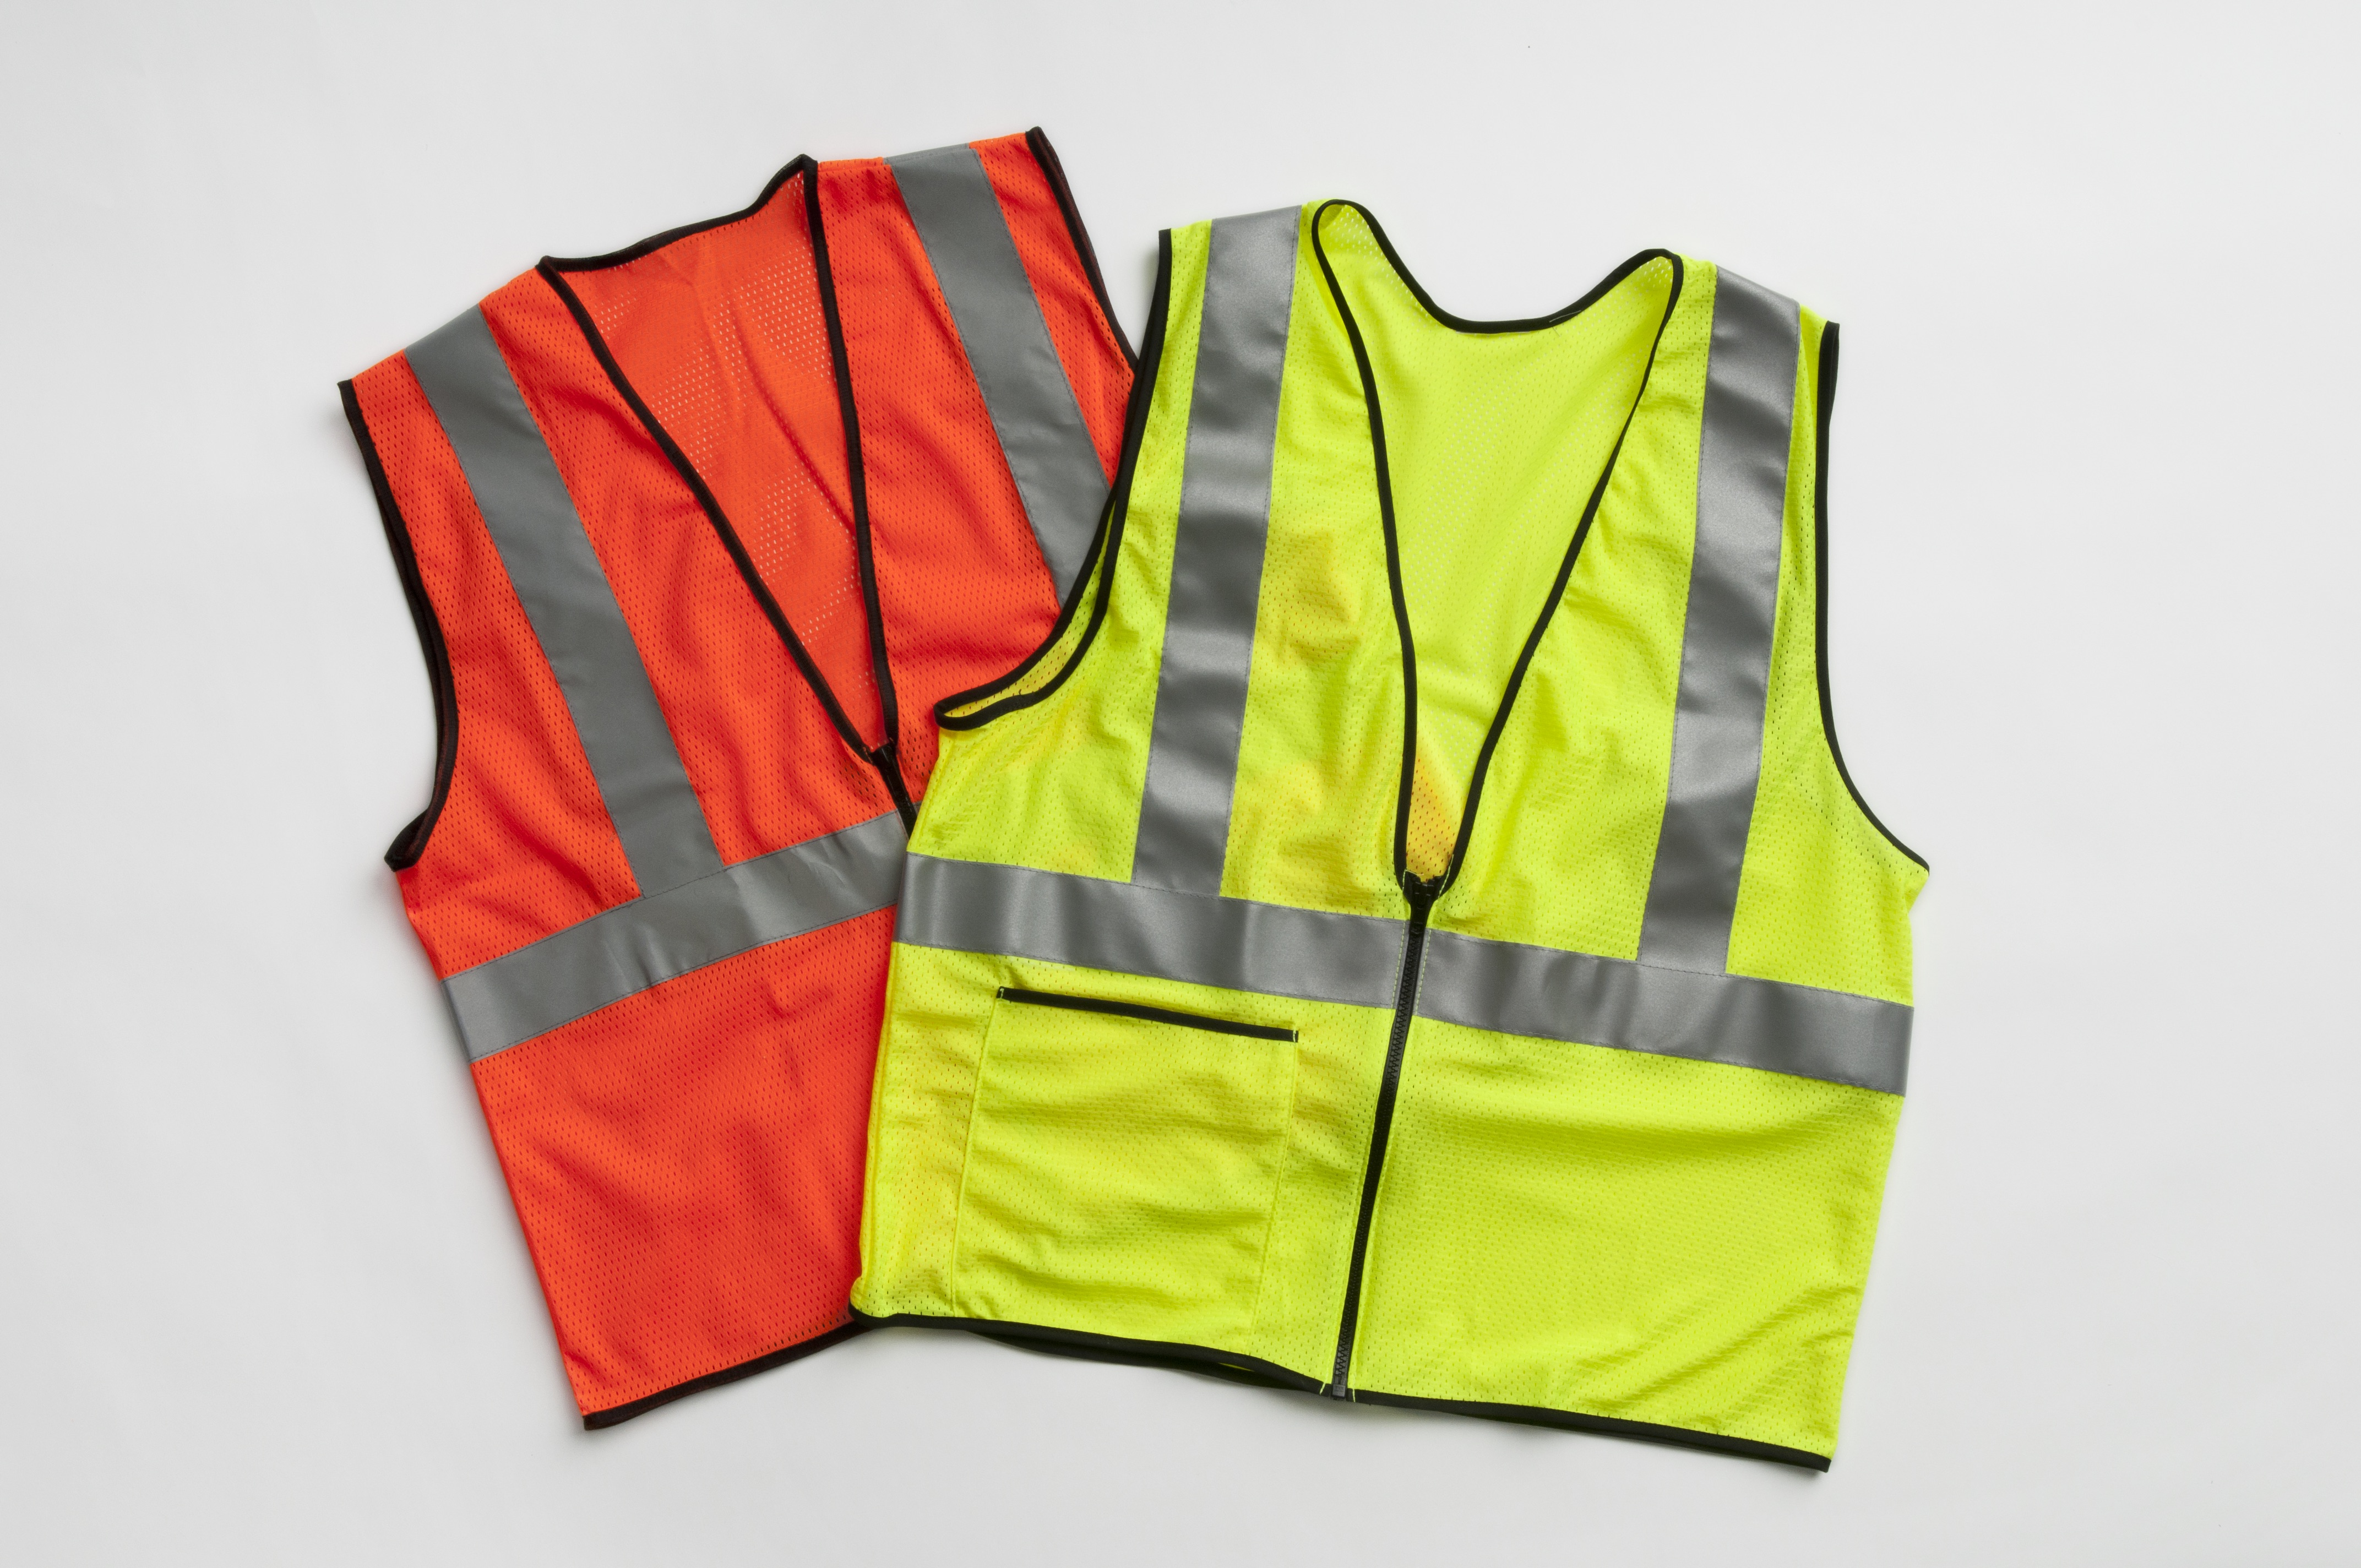 a display of safety vest in orange and yellow